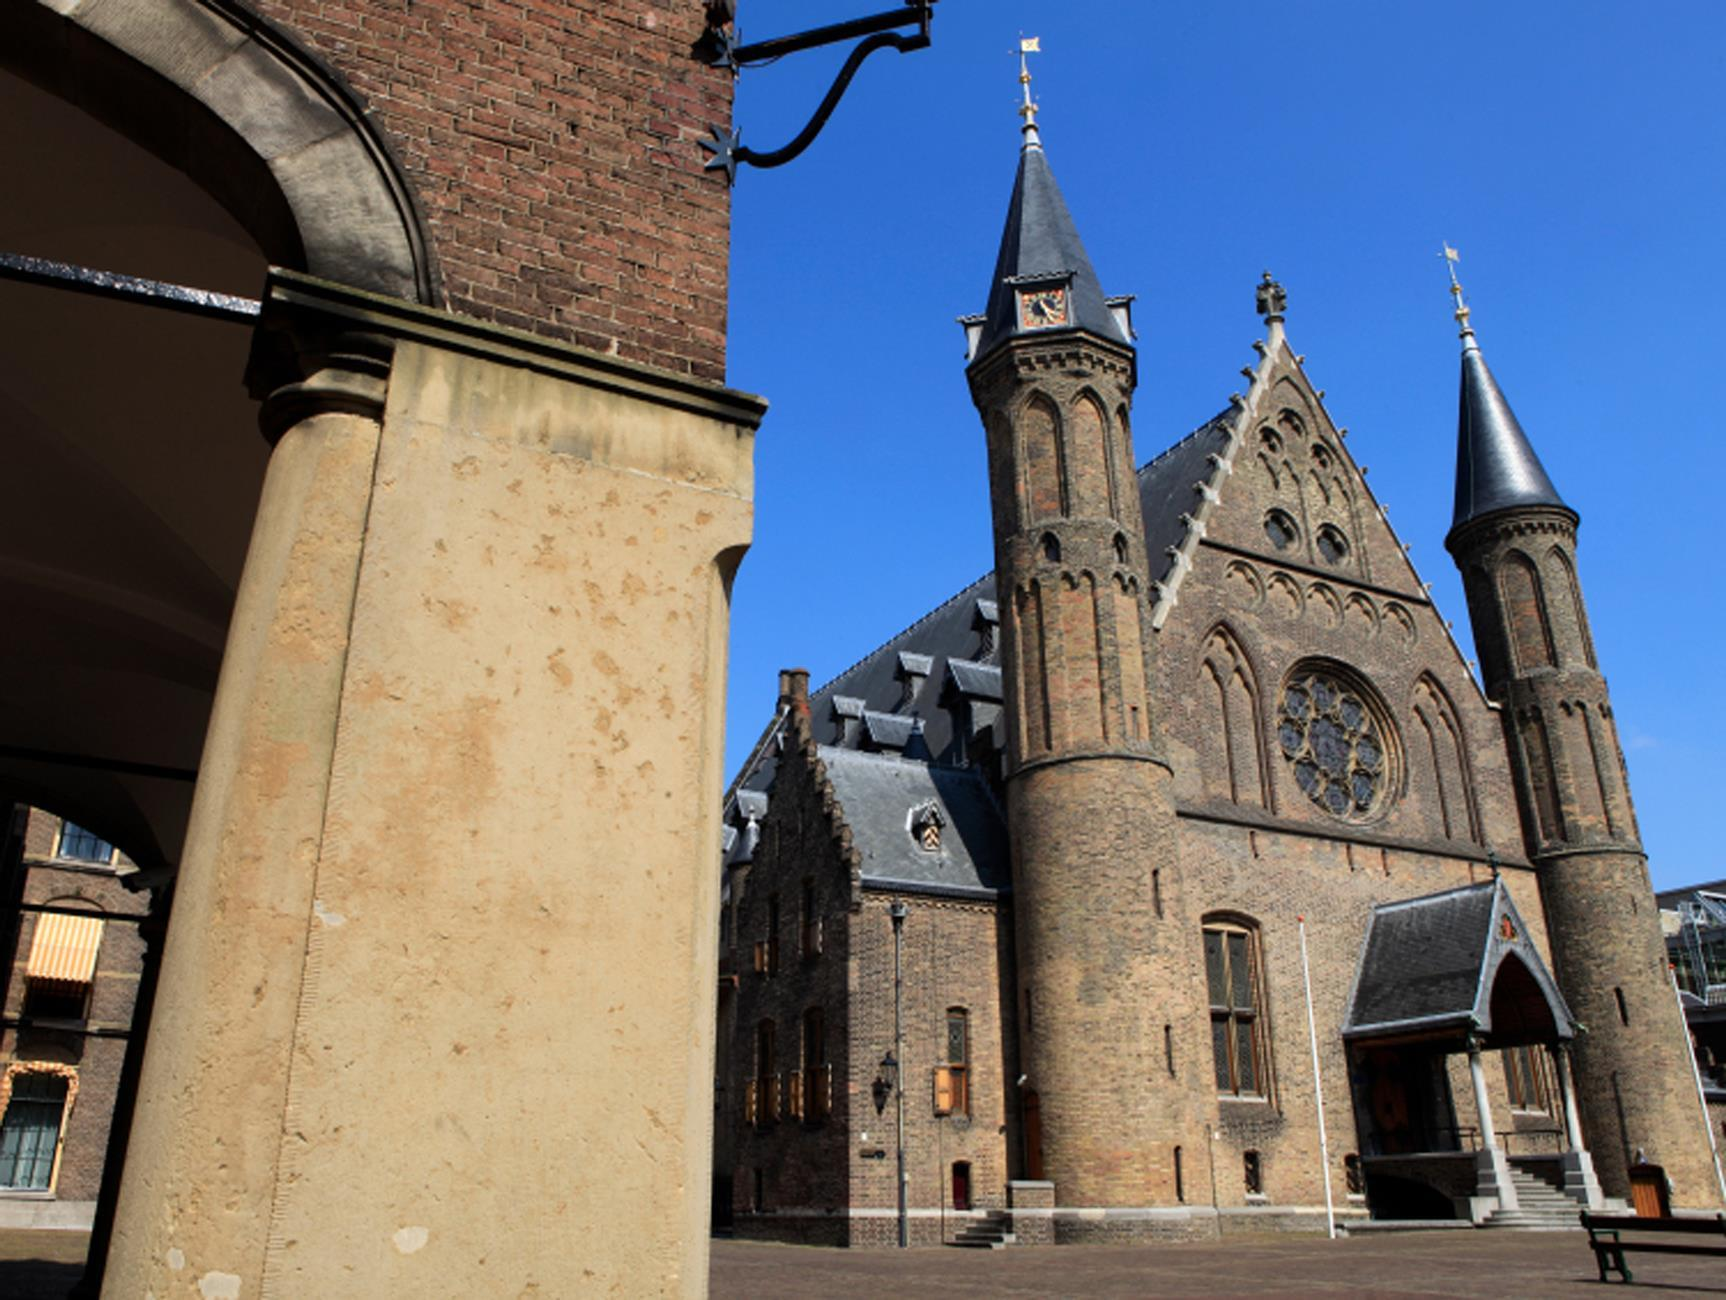 Knights' Hall at Binnenhof in The Hague